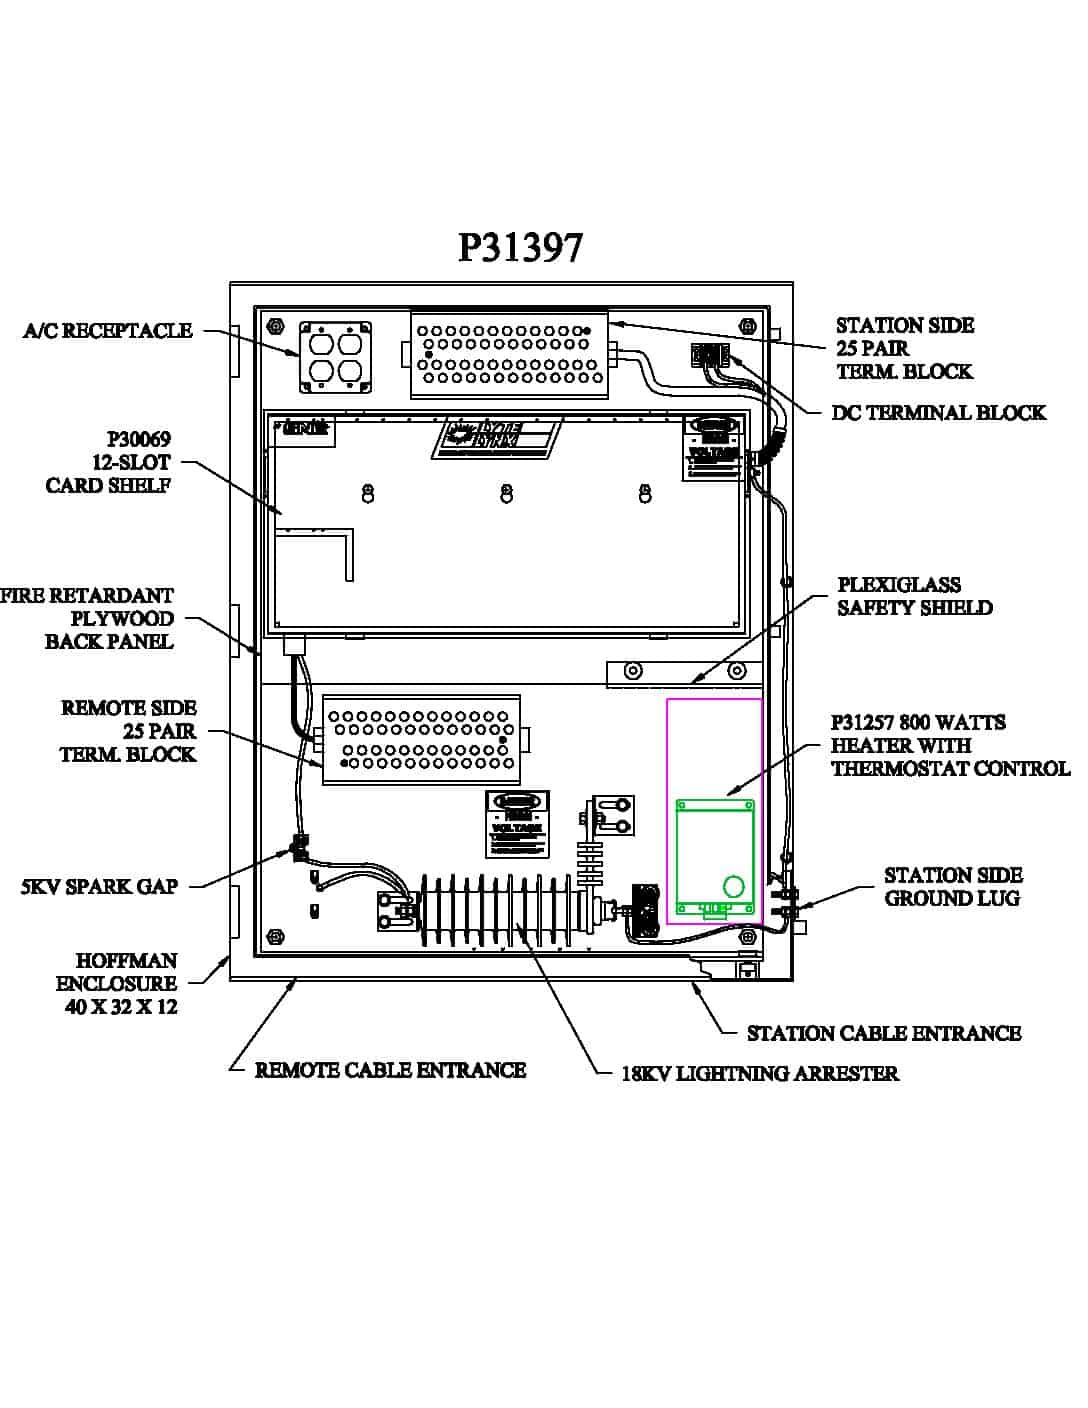 P31397 Turnkey Protection Packages – 12 slot PDF thumbnail